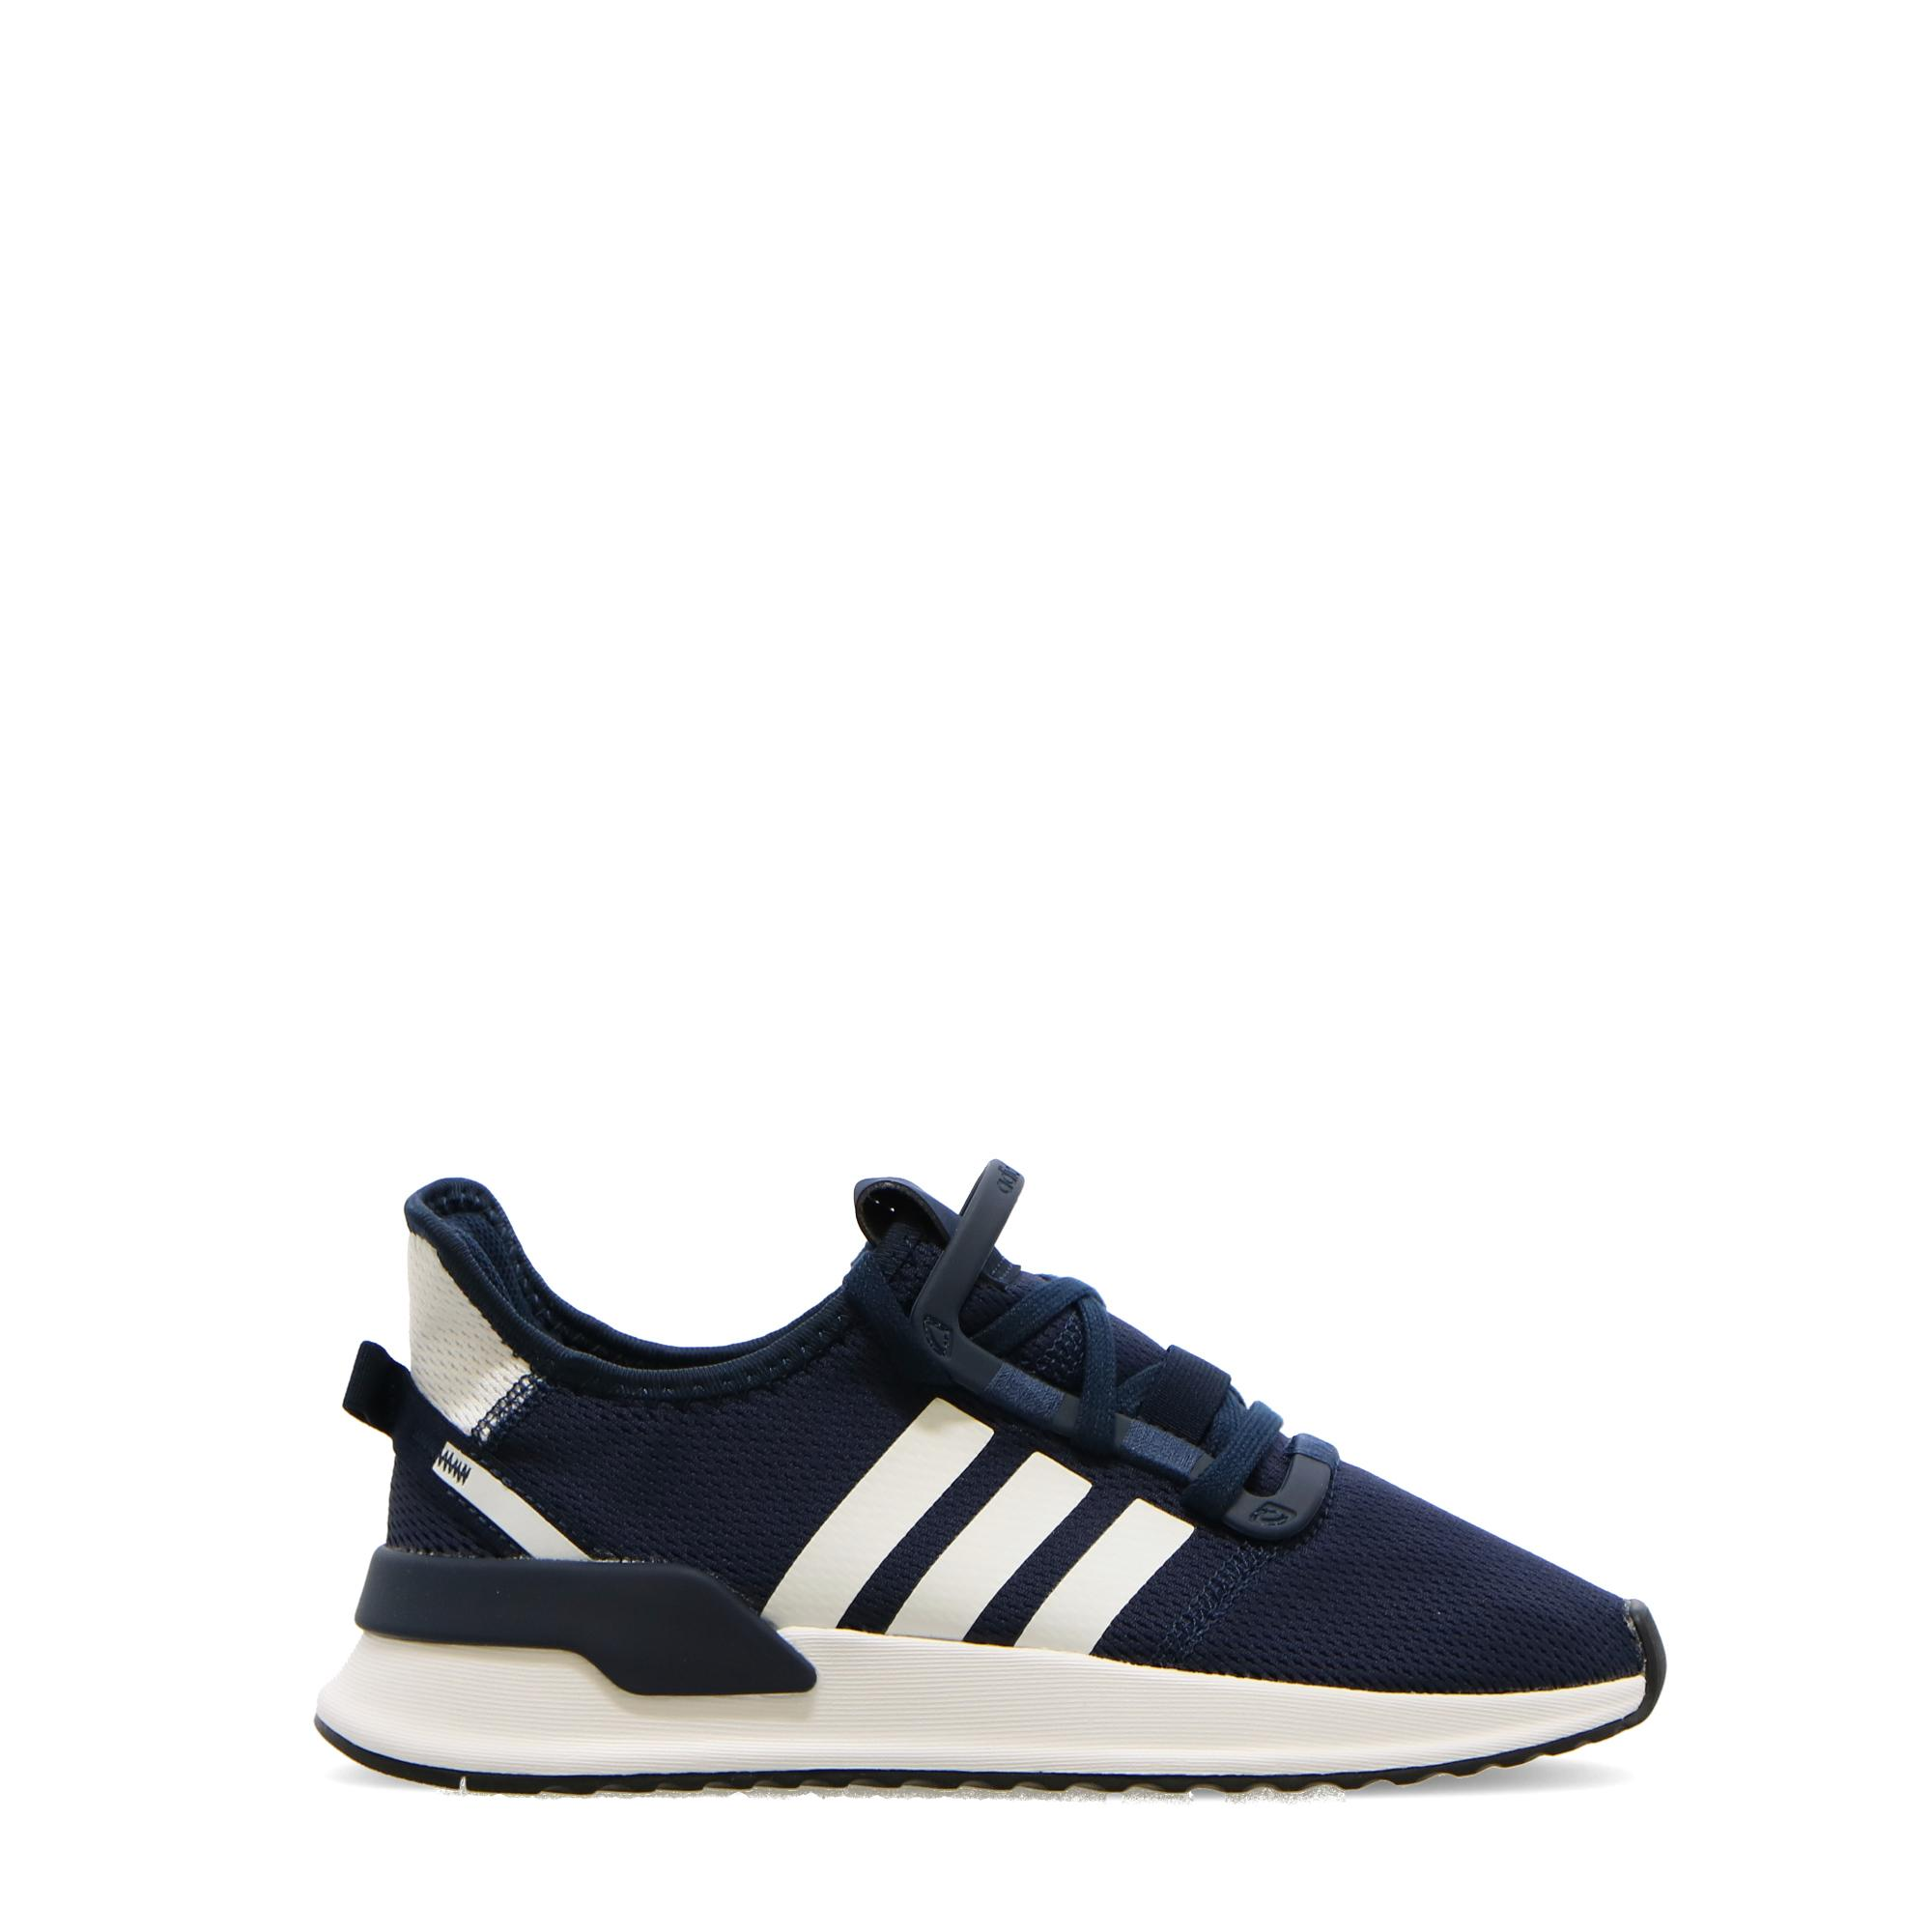 Adidas U_path Run J Collegiate navy white black